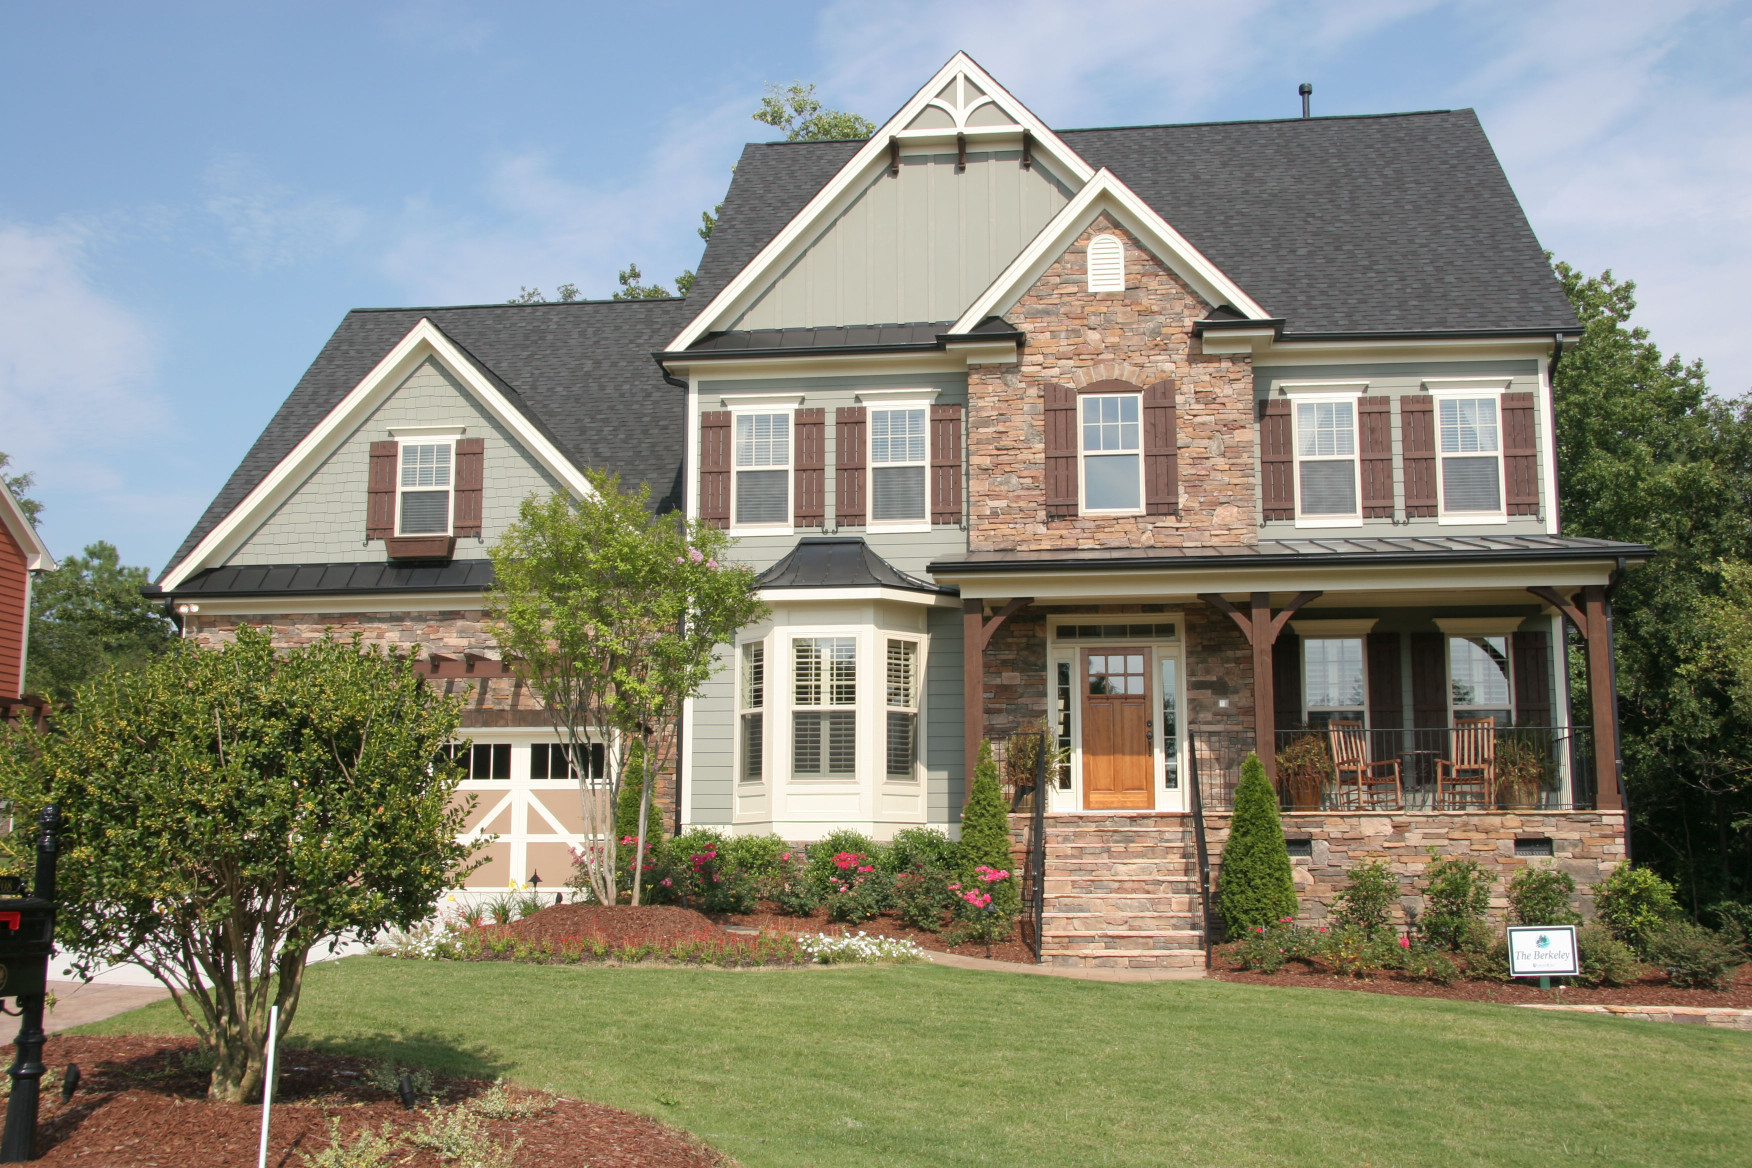 Gable Brackets, Braces, Cedar Shutters, and timber porch kit define this craftman style home